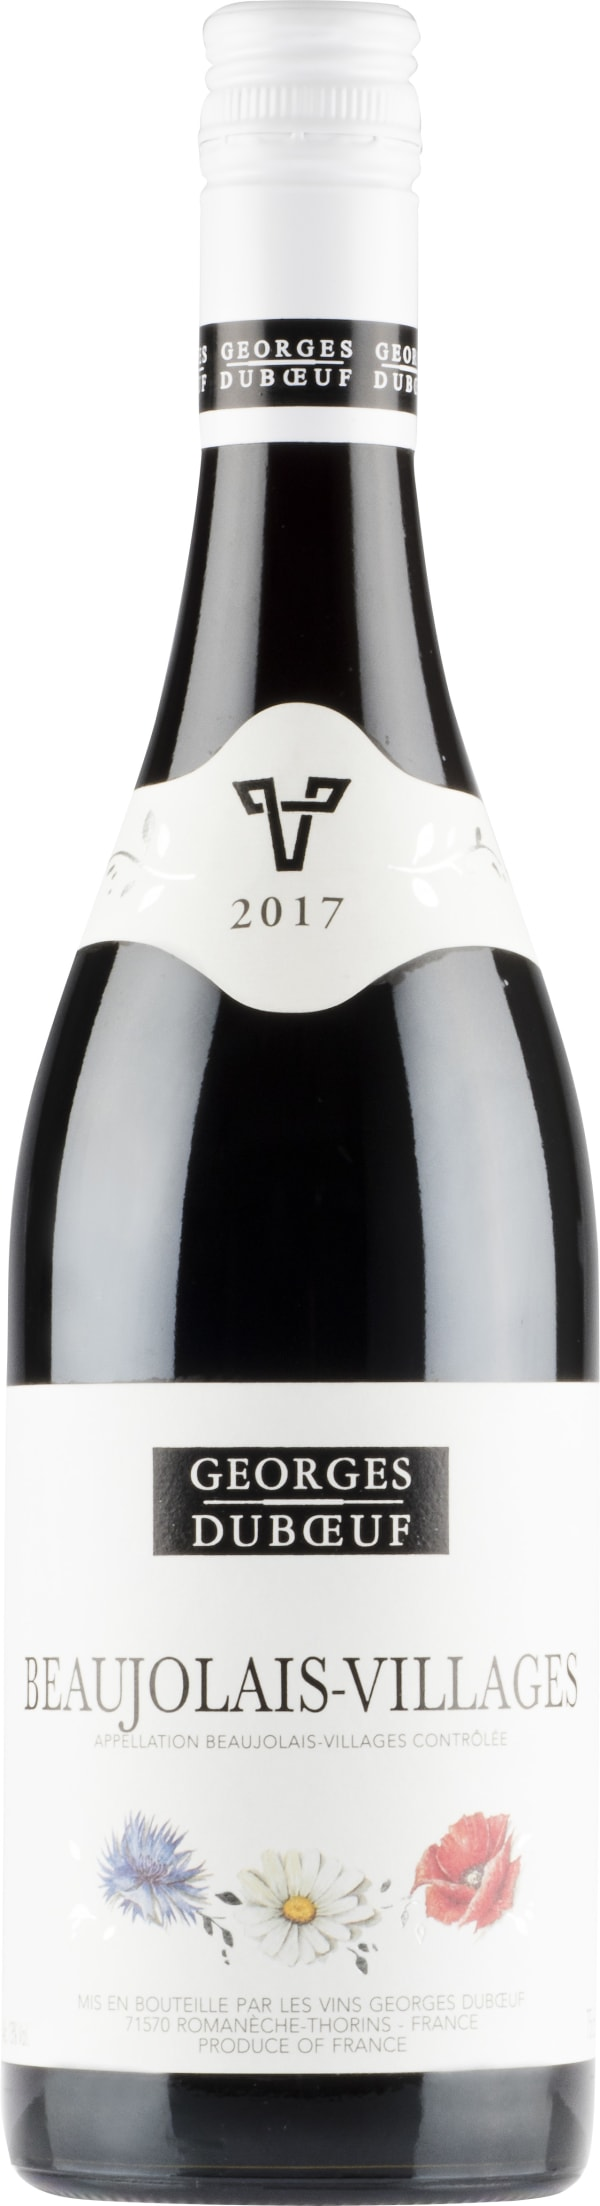 Georges Duboeuf Beaujolais-Villages 2015